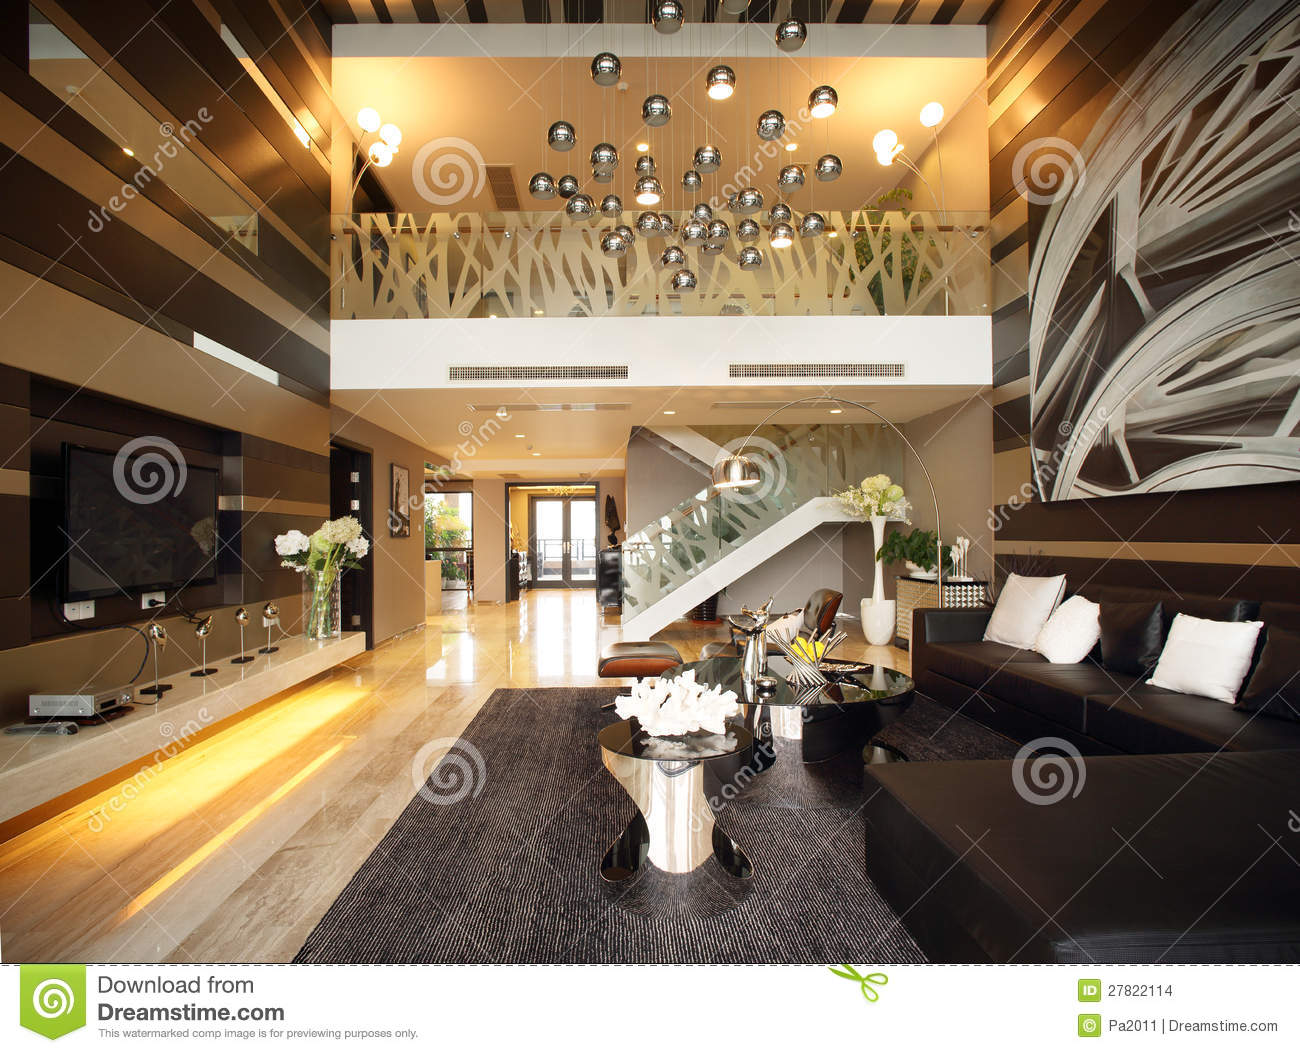 Modern interior design living room stock photo image - Pictures of interior design living rooms ...